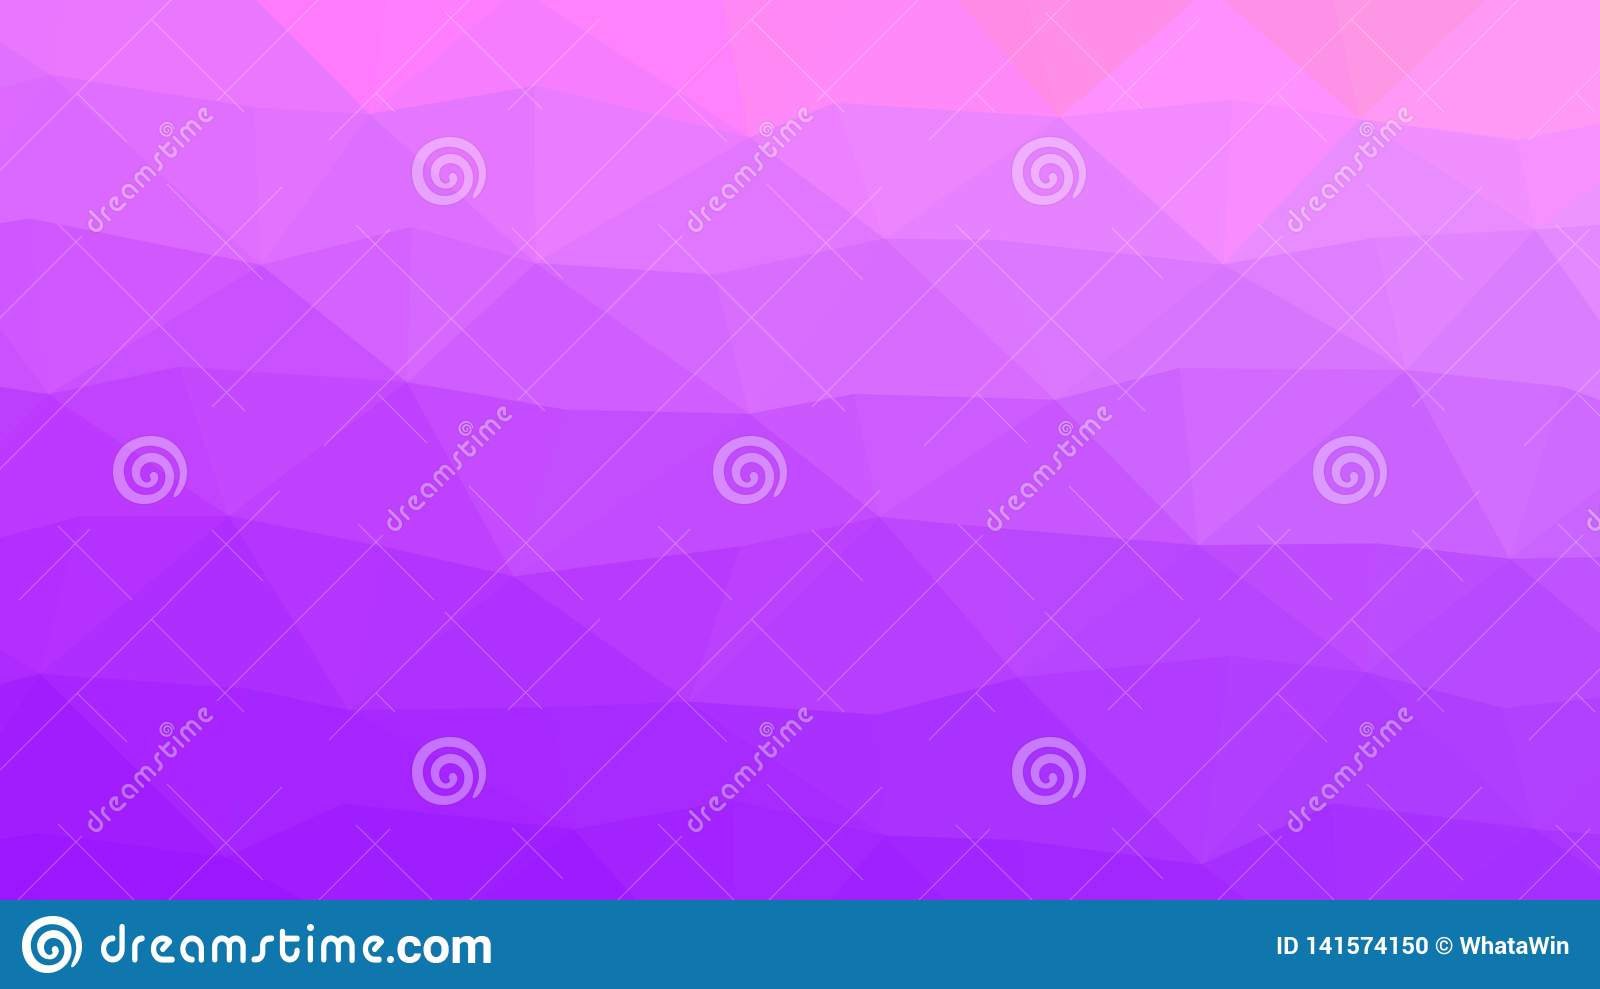 Pastel Purple And Pink Low Poly Backdrop Stock Vector